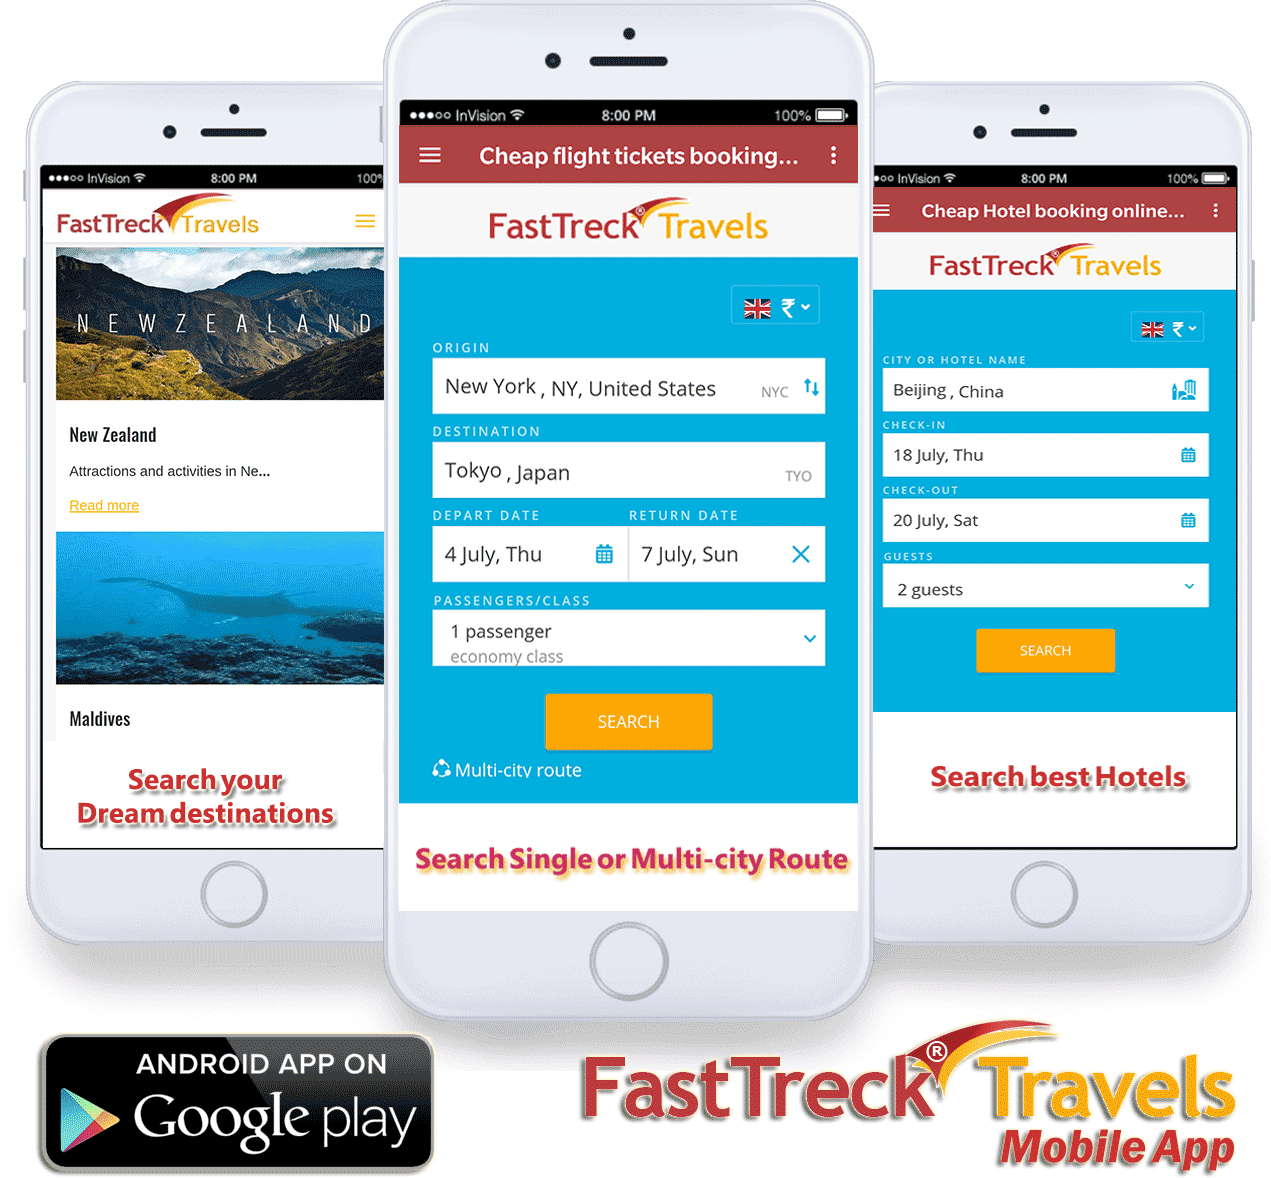 Click Here to Download FastTreck Travels Mobile App